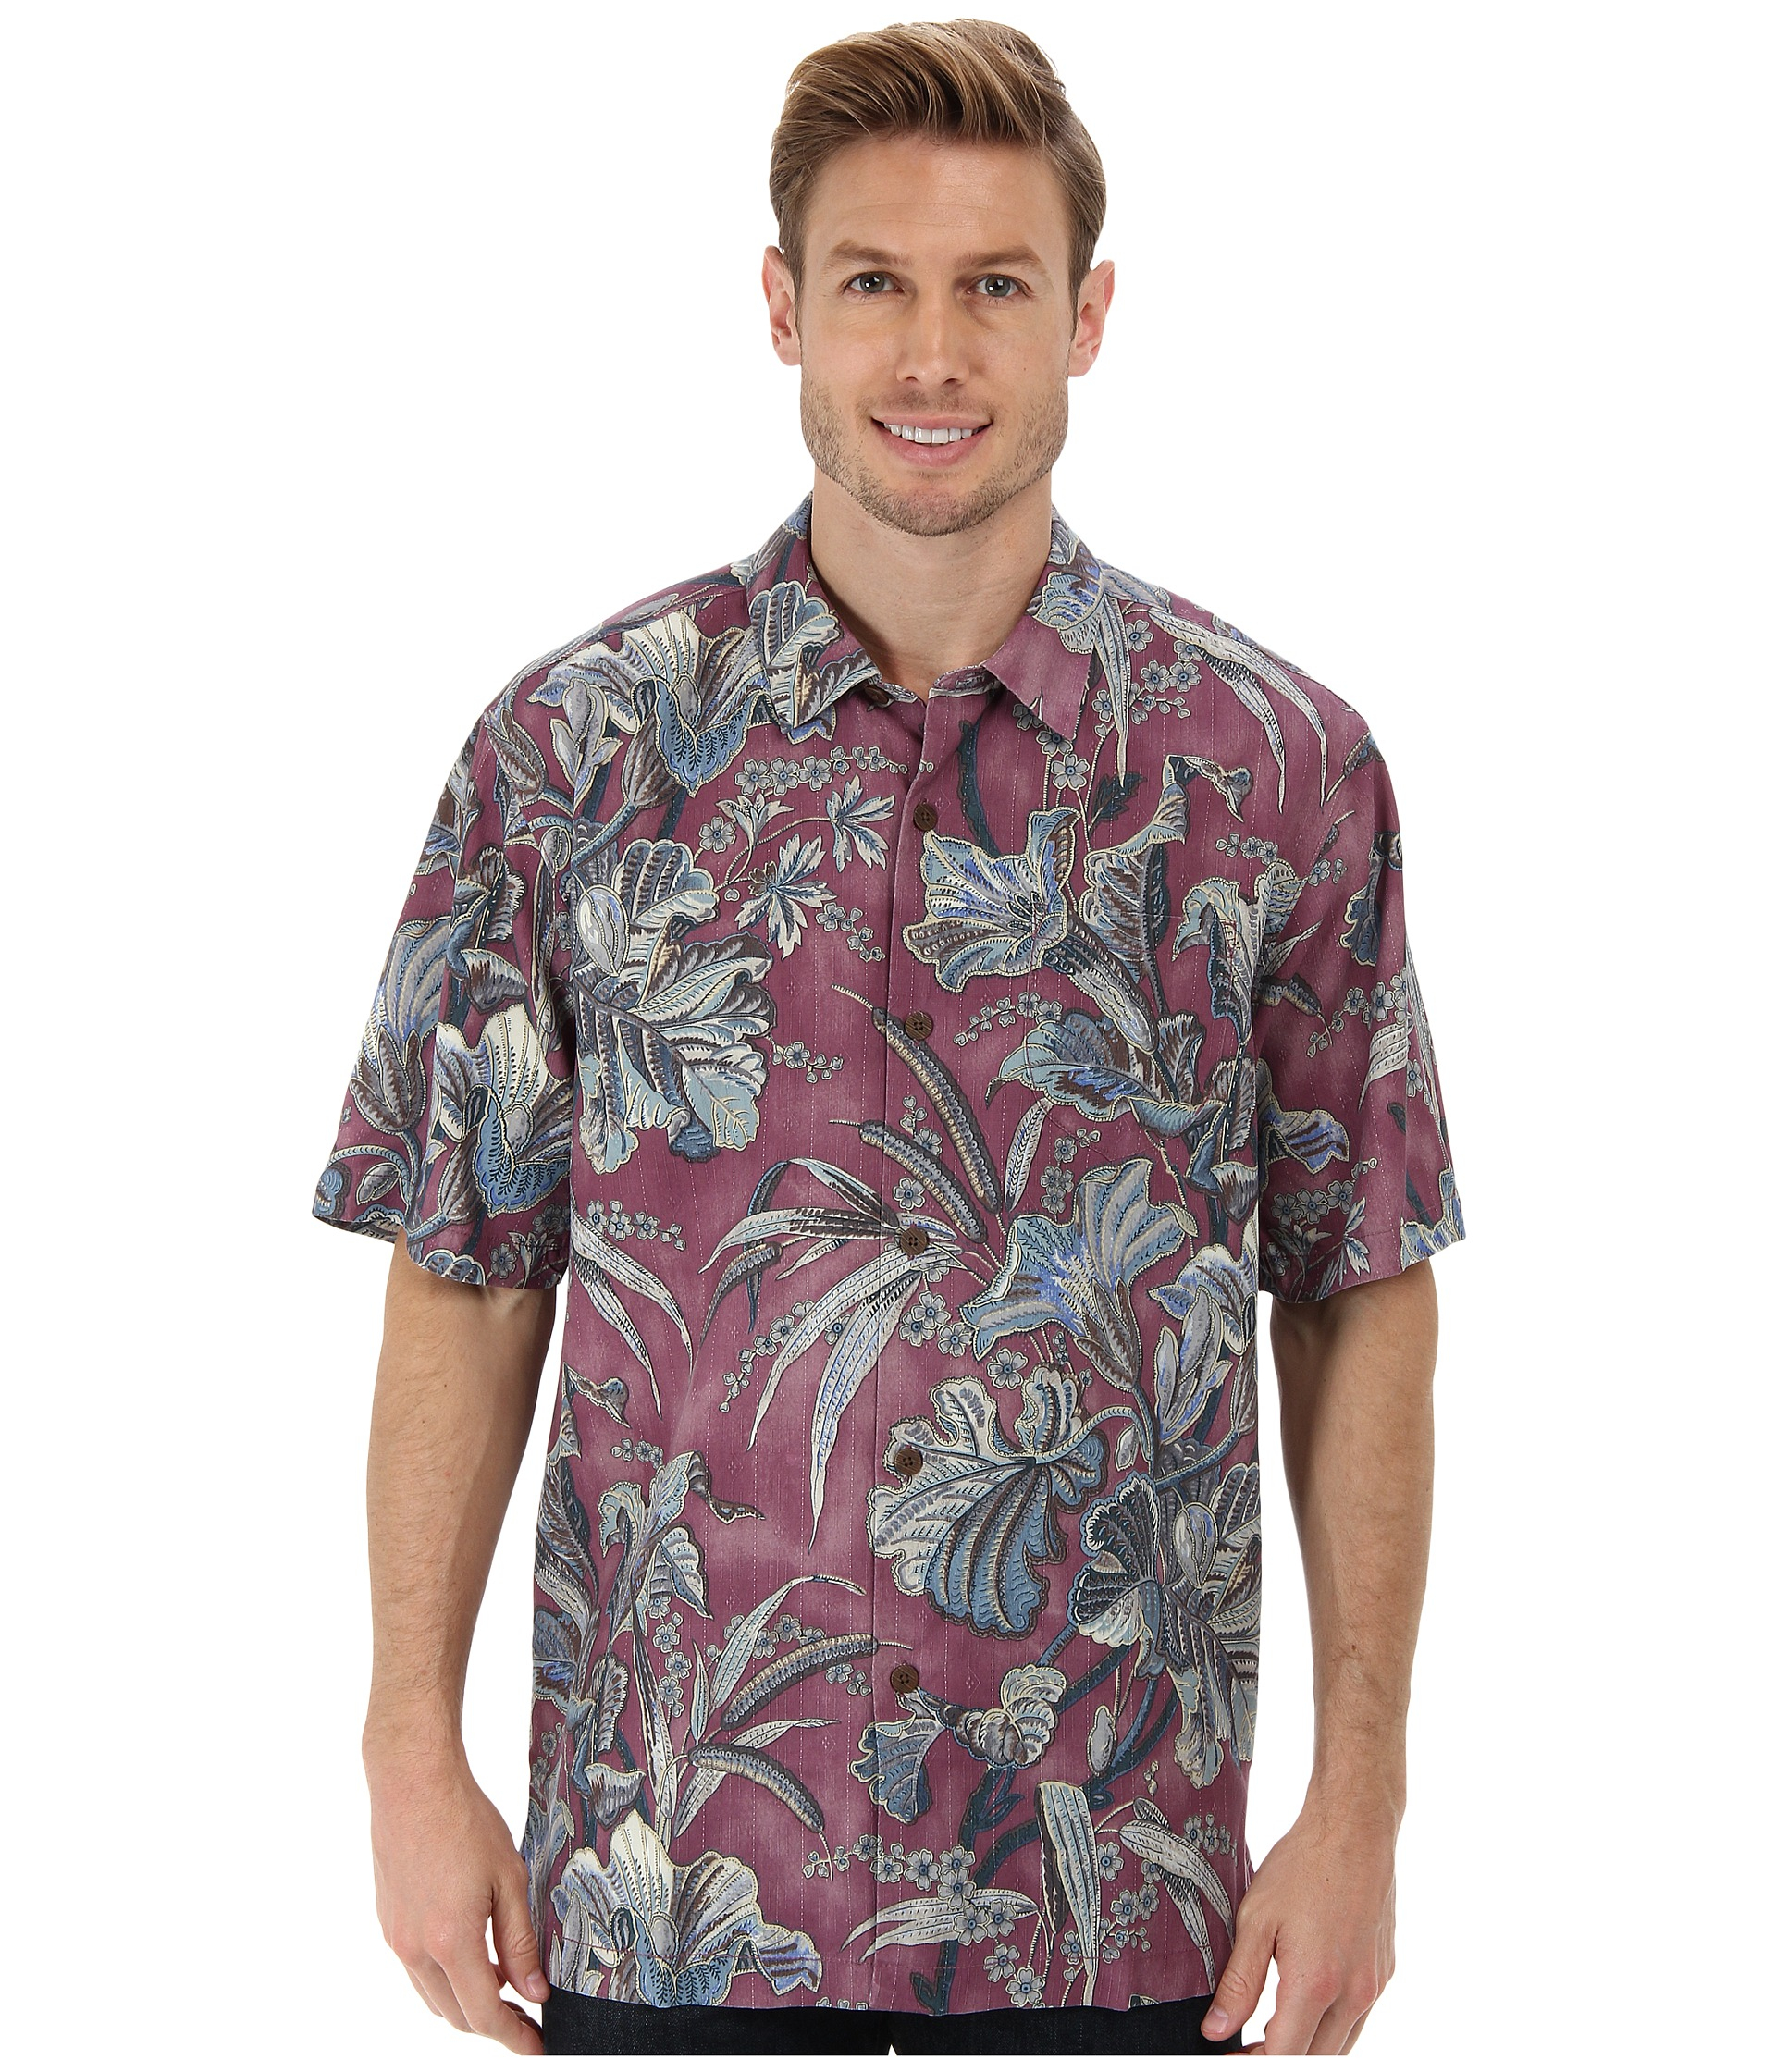 Tommy bahama botanica bay ss camp shirt in pink for men for Tommy bahama christmas shirt 2014